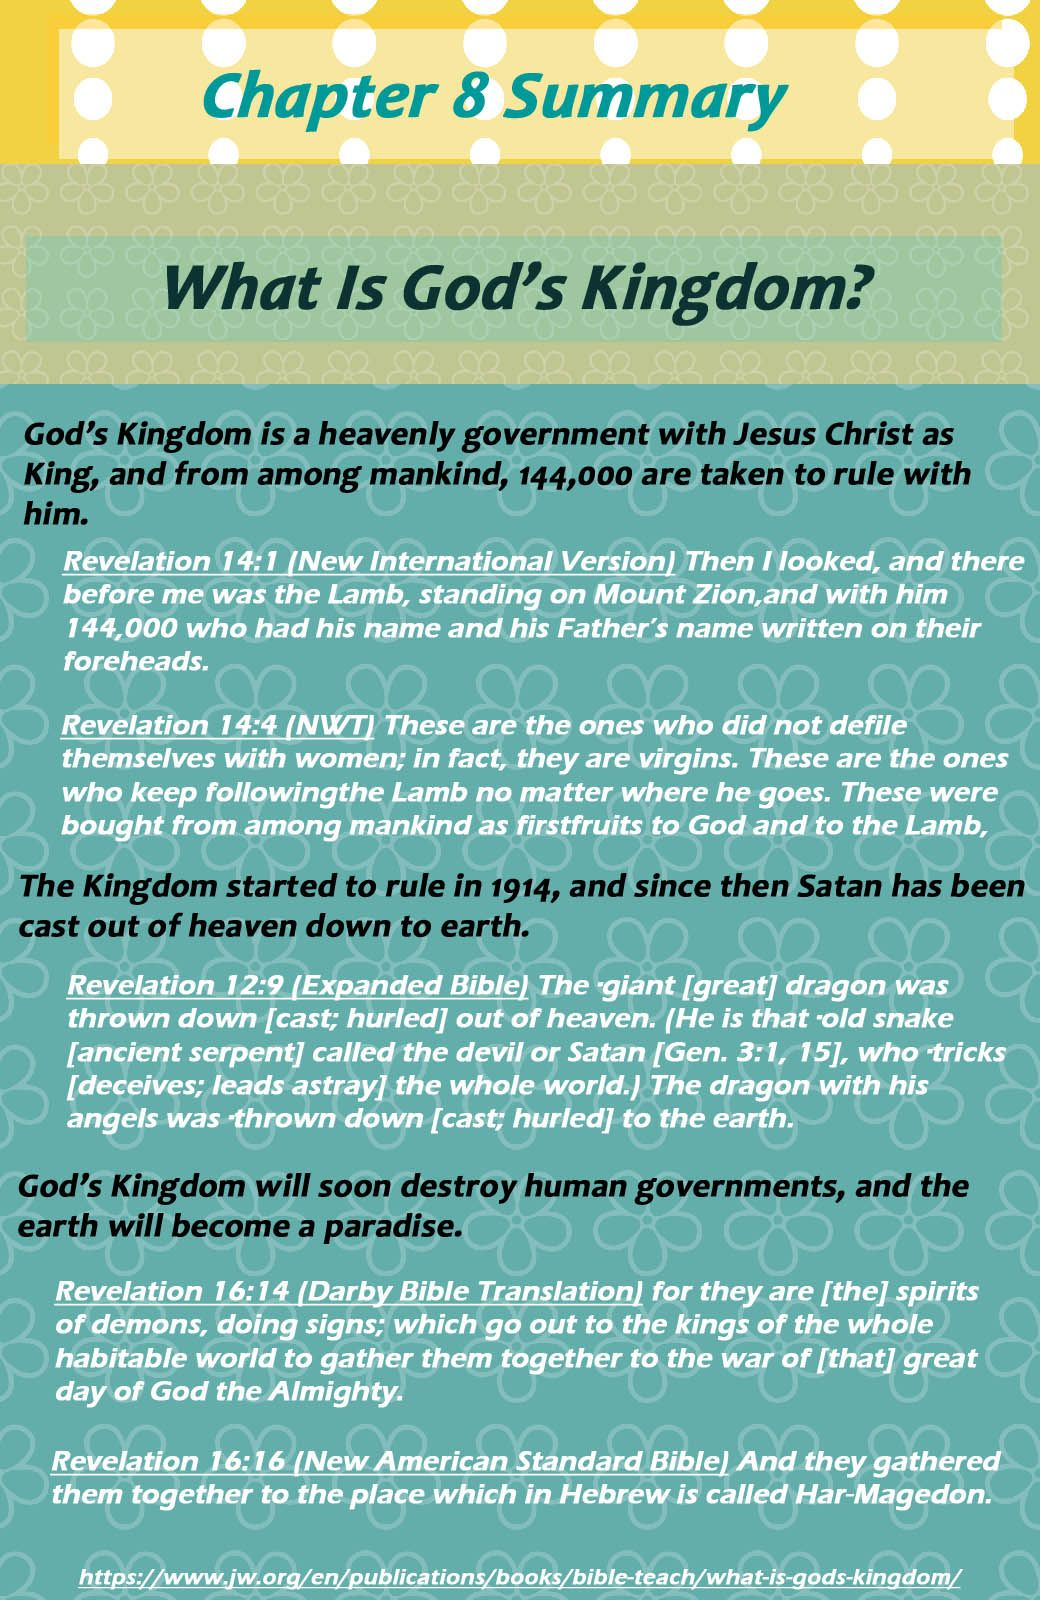 What Is God's Kingdom? Why Pray for the Kingdom of God to